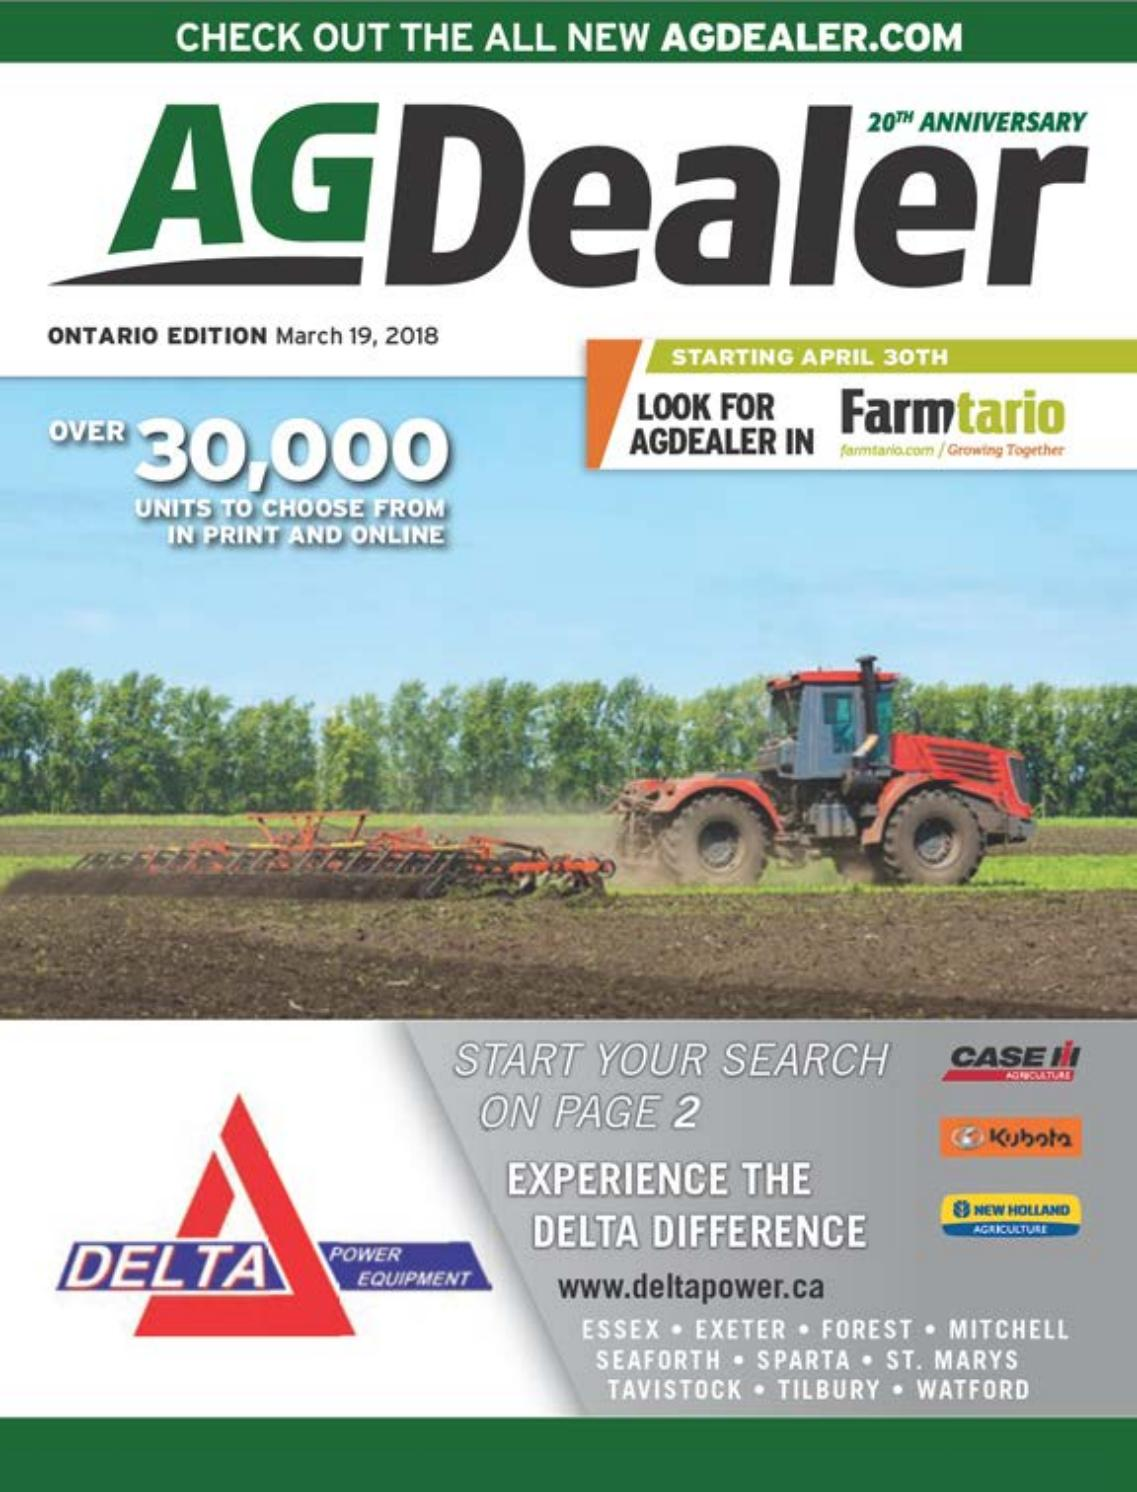 AGDealer ALL Ontario Edition, March 19, 2018 by Farm